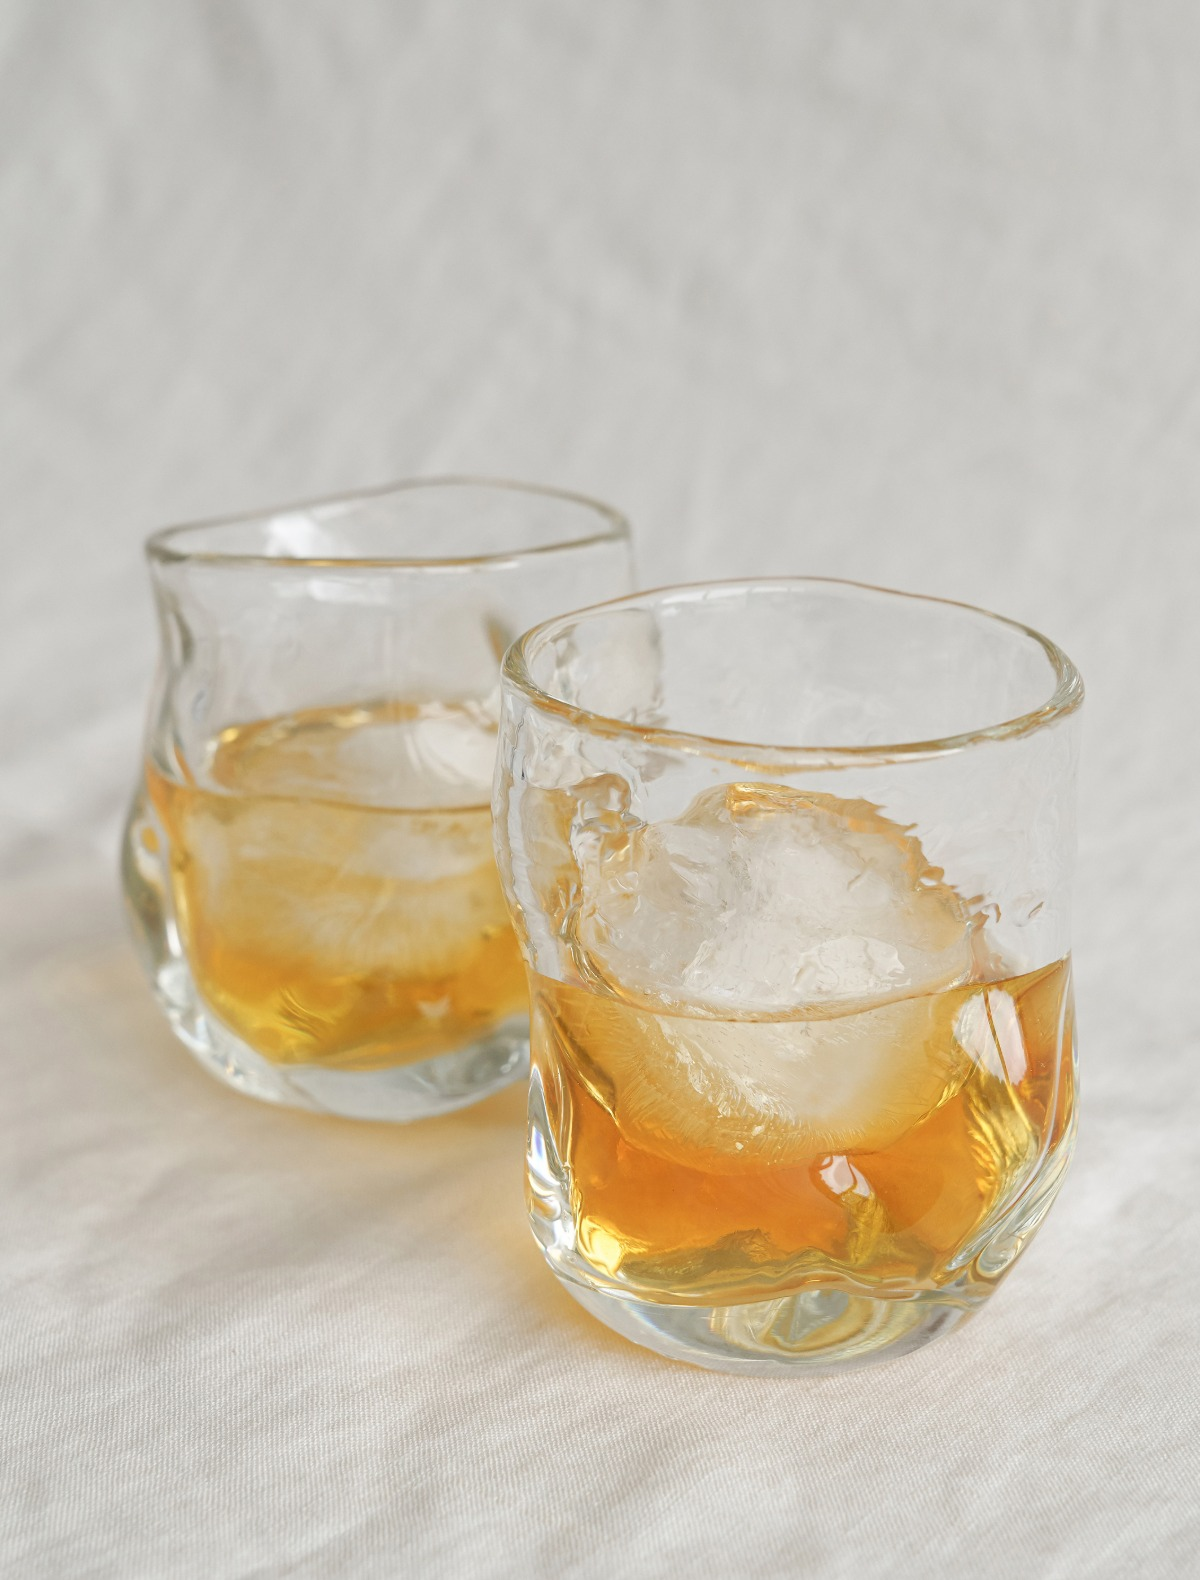 김동완 작가의 Handblown Whiskey Glass